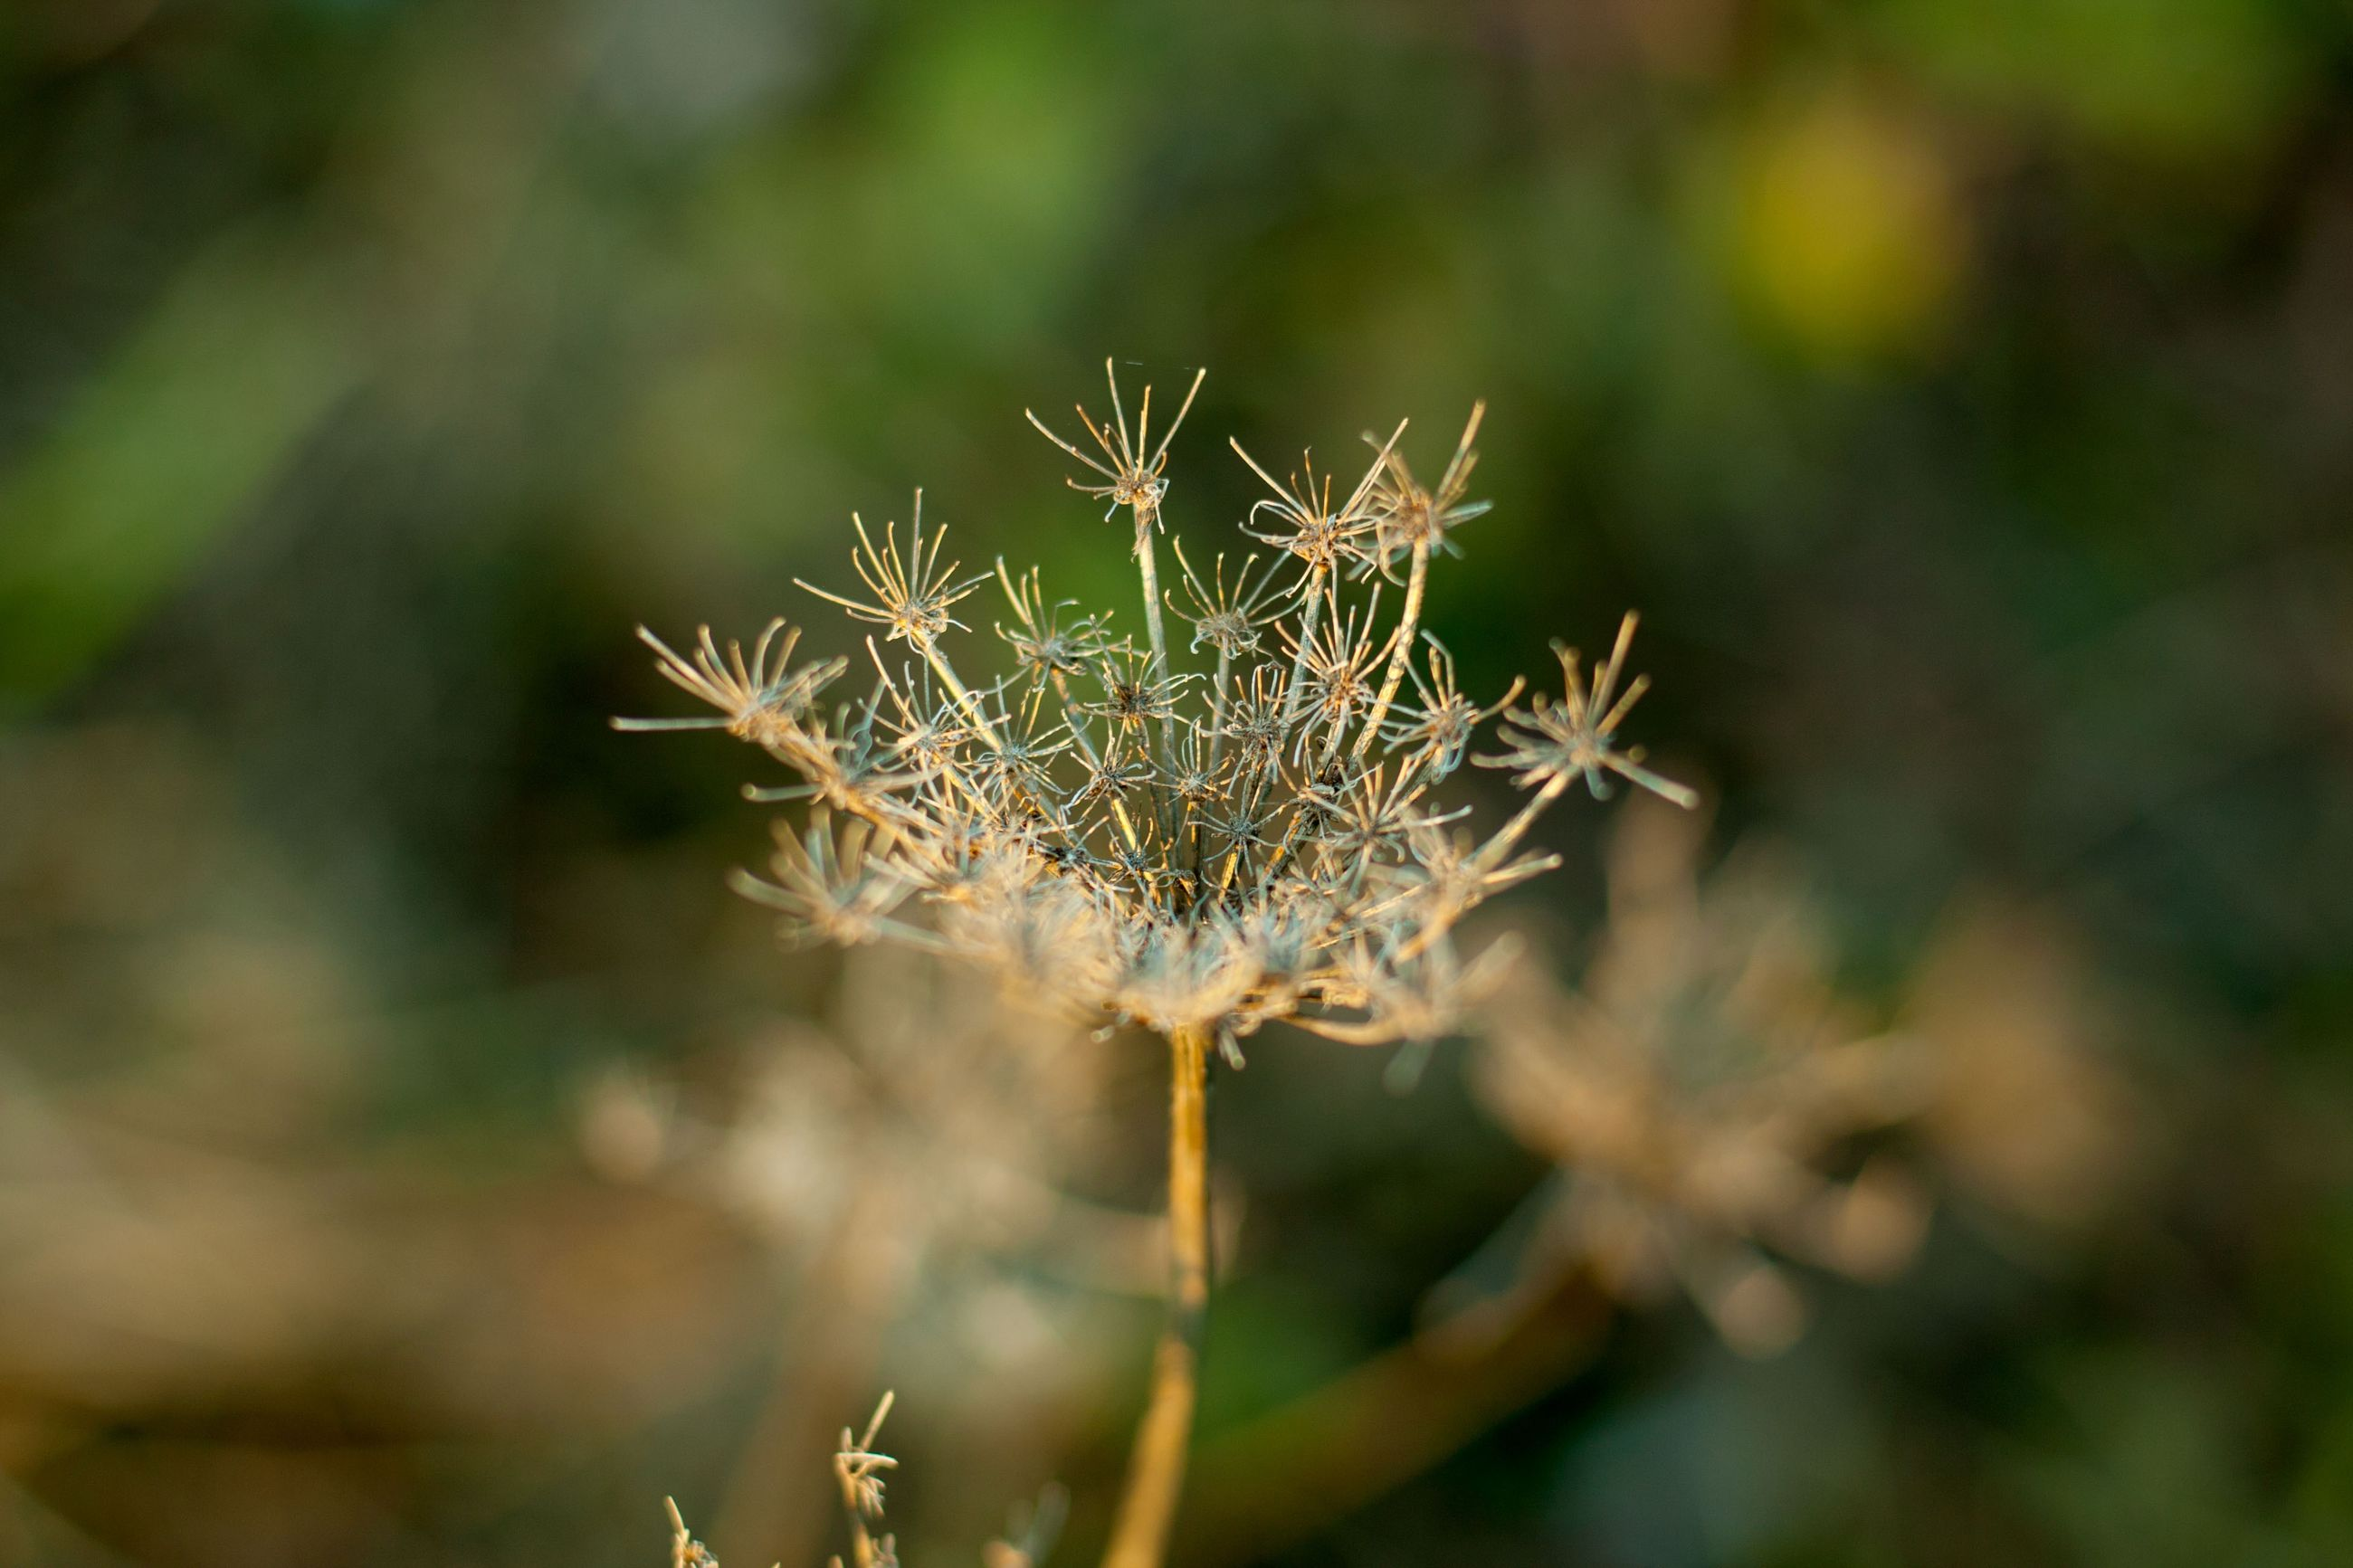 nature, plant, growth, fragility, close-up, focus on foreground, outdoors, no people, beauty in nature, day, flower